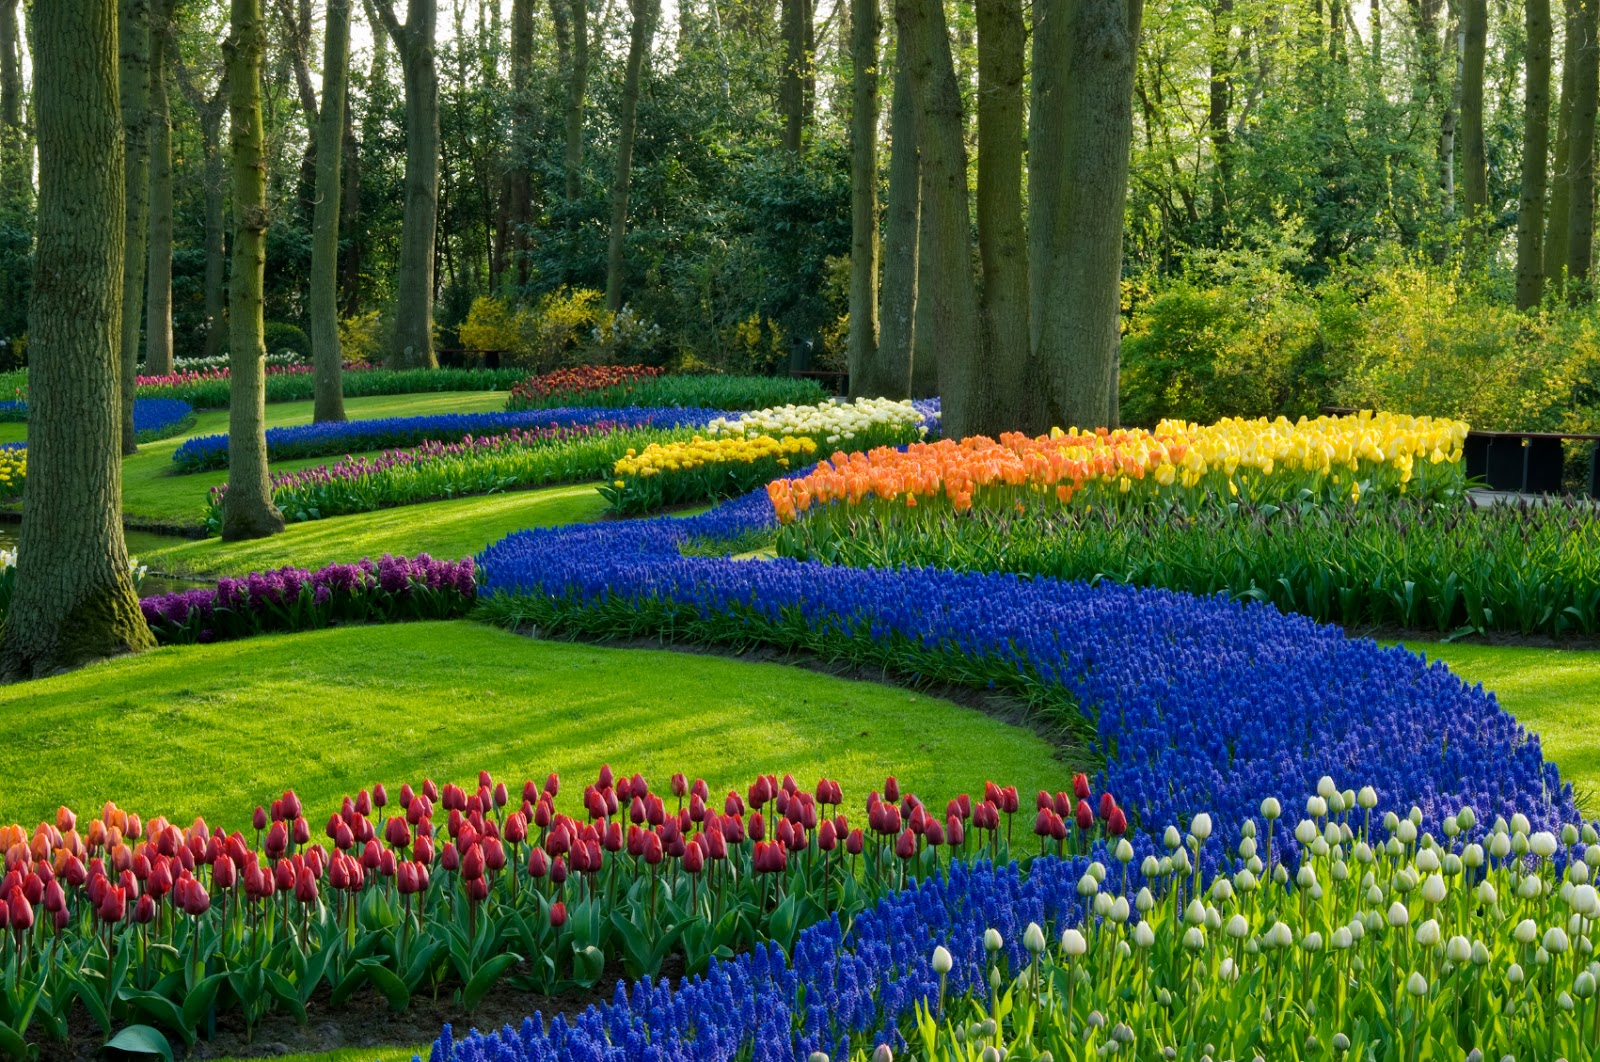 A Garden Is Place Where Different Types Of Plants Specially Flowers And Vegetables Are Cultivated Gardening As Hobby Not Only Pleasurable But Also